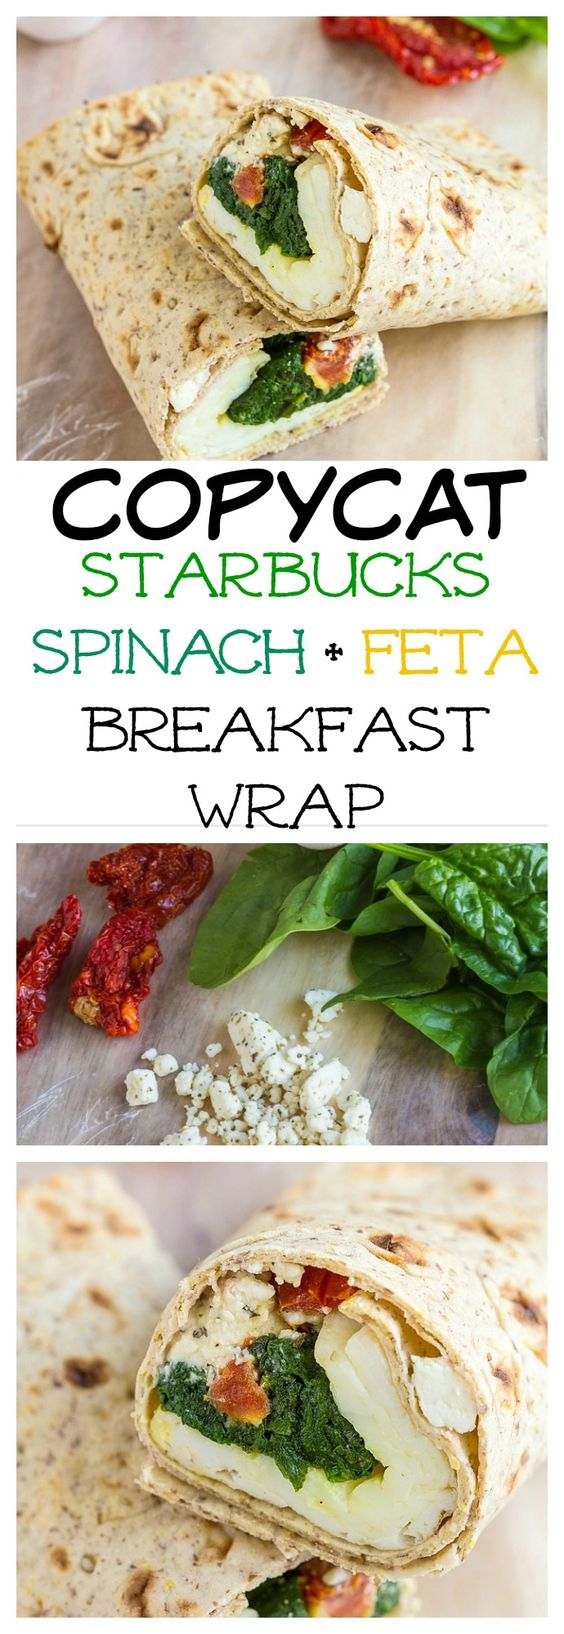 Never go to Starbucks for food again- This Copycat Spinach and Feta wrap tastes so much better, is cost effective, freezer friendly and gluten free! #backtoschool #lunchbox #college